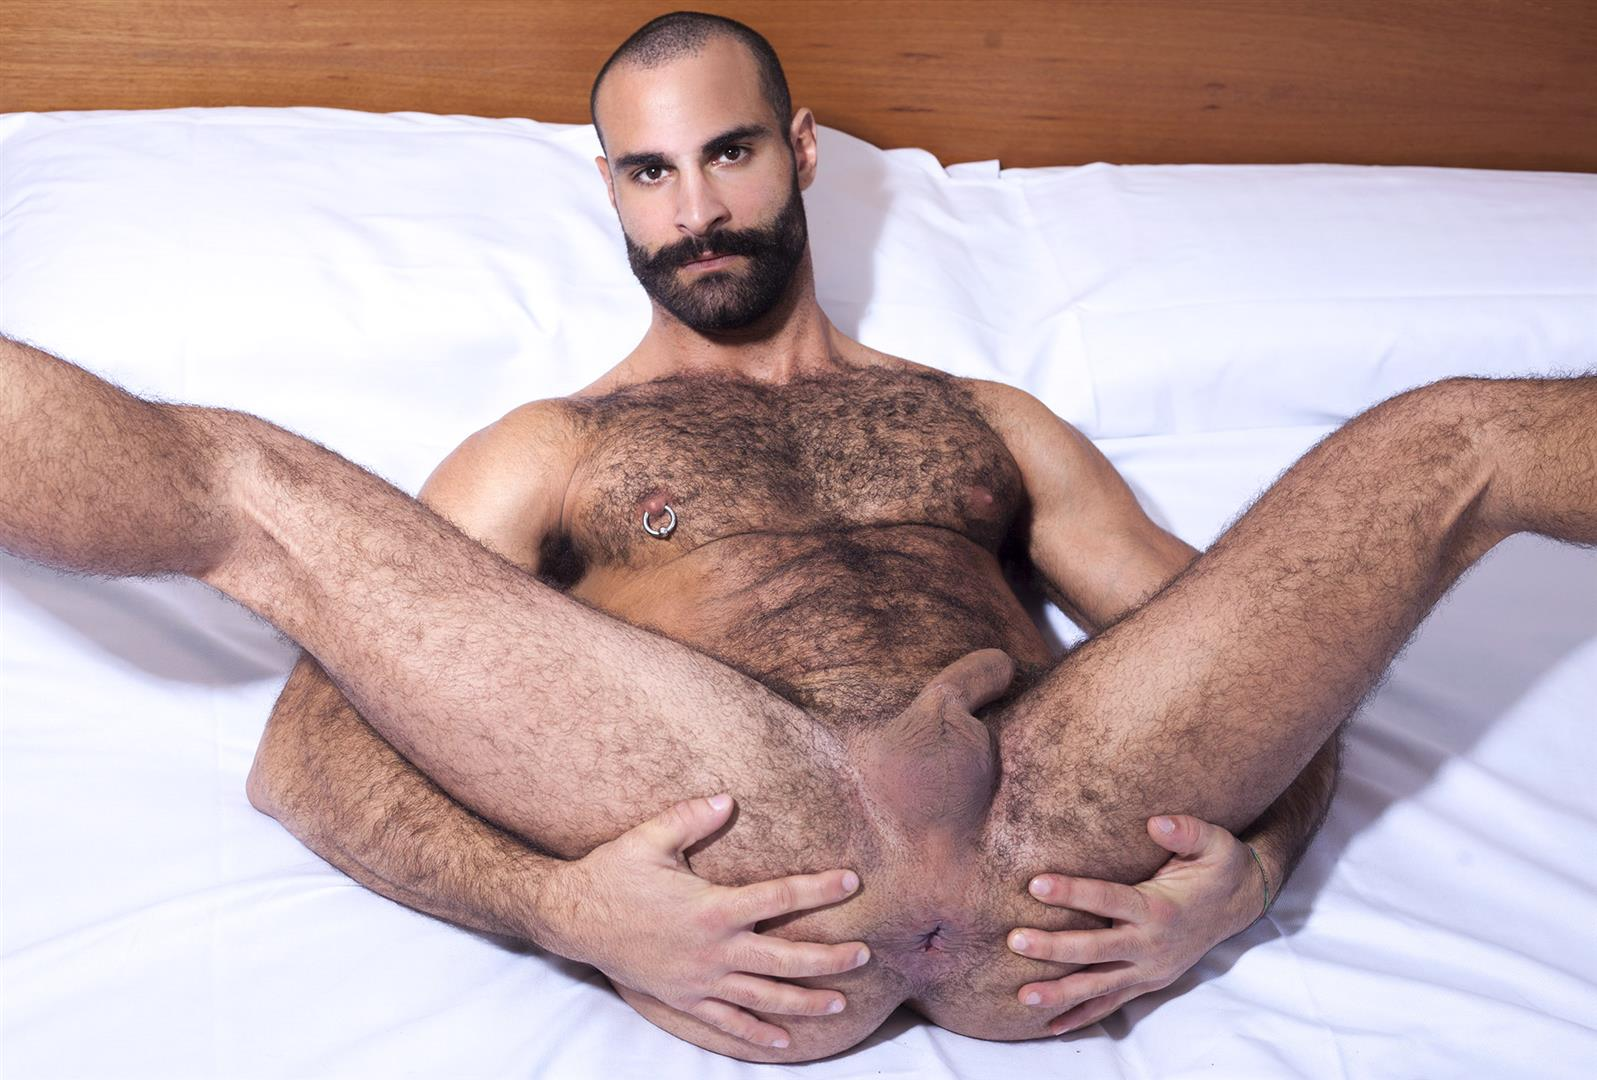 Fuckermate-Jean-Frank-and-Paco-Hairy-Muscle-Hunks-With-Big-Uncut-Cocks-Fucking-Amateur-Gay-Porn-18 Hairy Muscle Italian Hunks With Big Uncut Cocks Fucking Rough